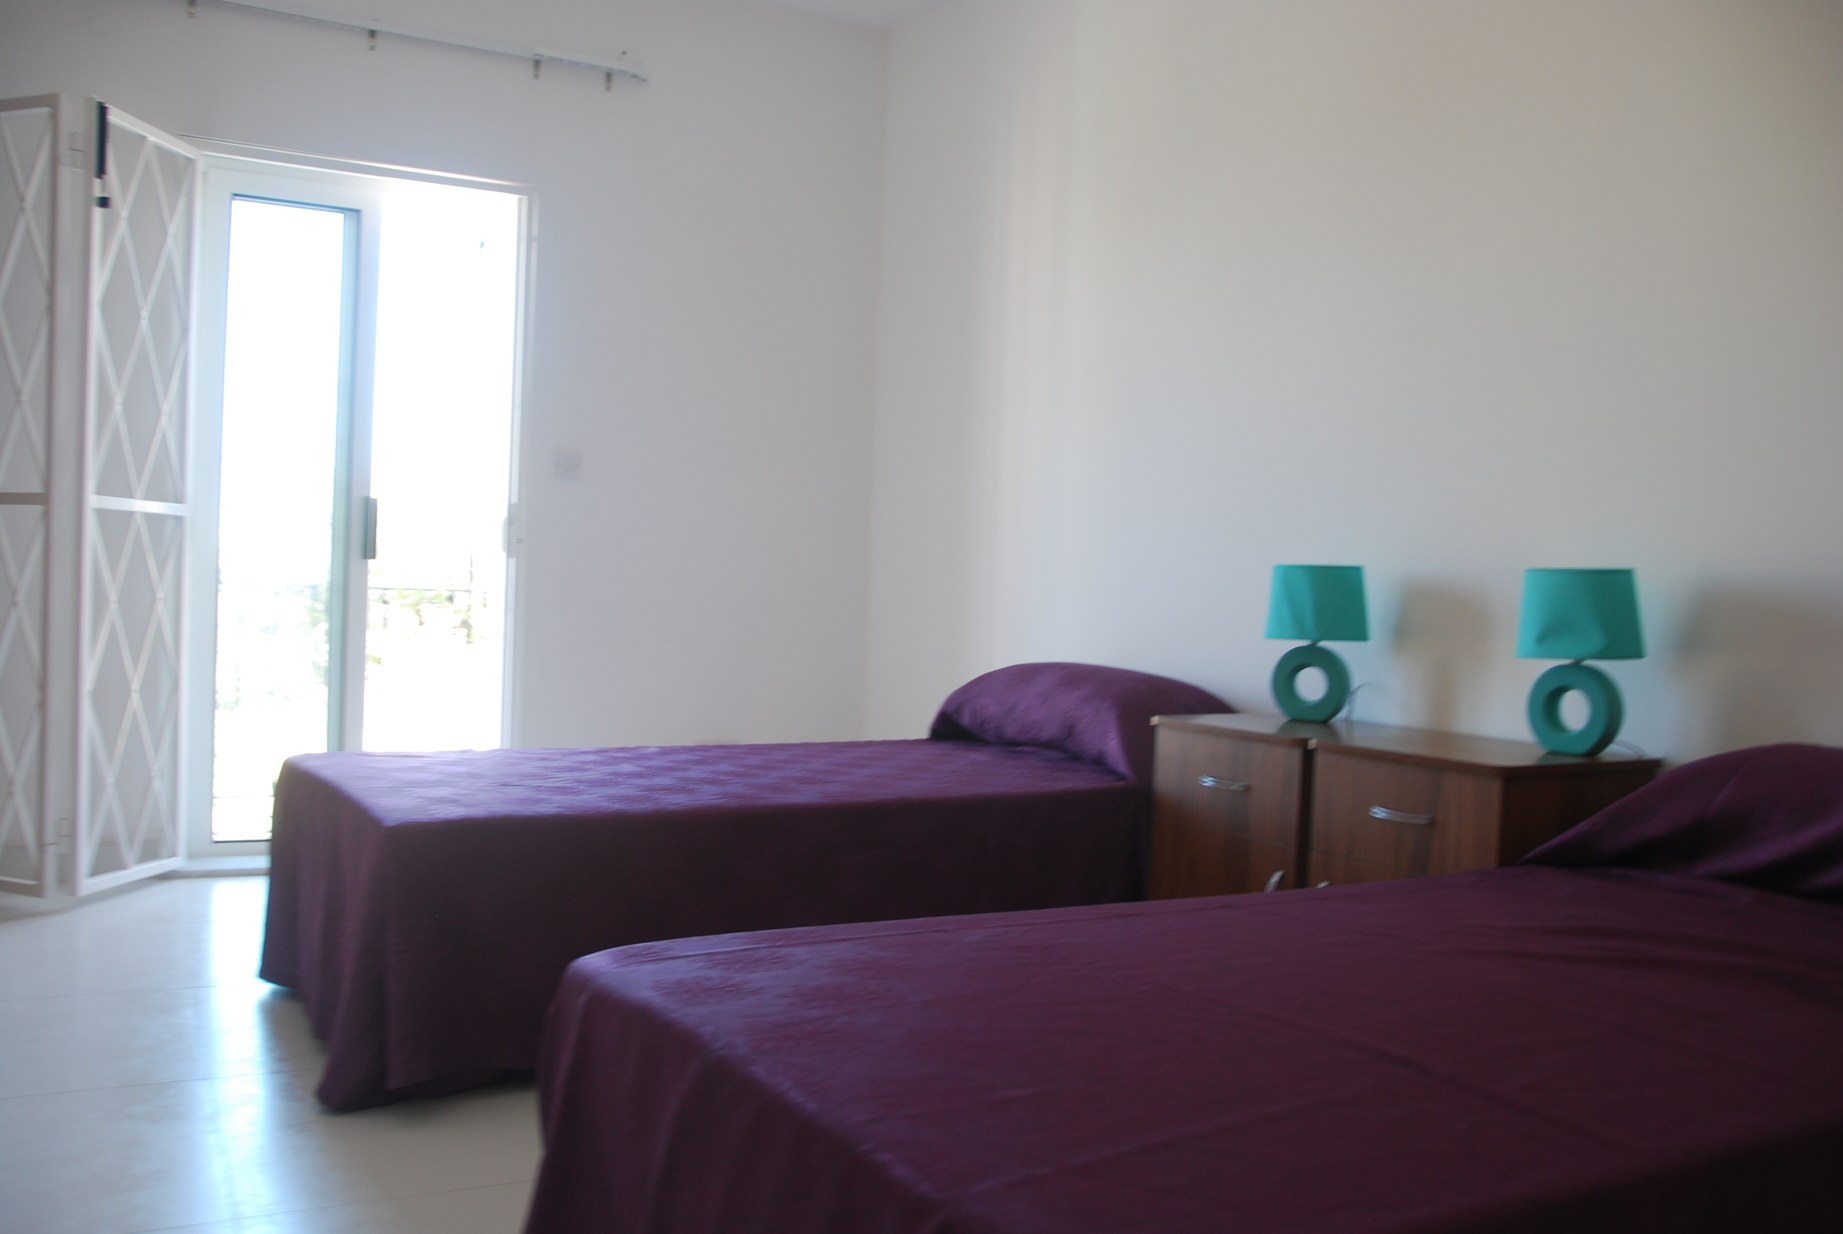 4 bed Apartment For Rent in Swieqi, Swieqi - thumb 11